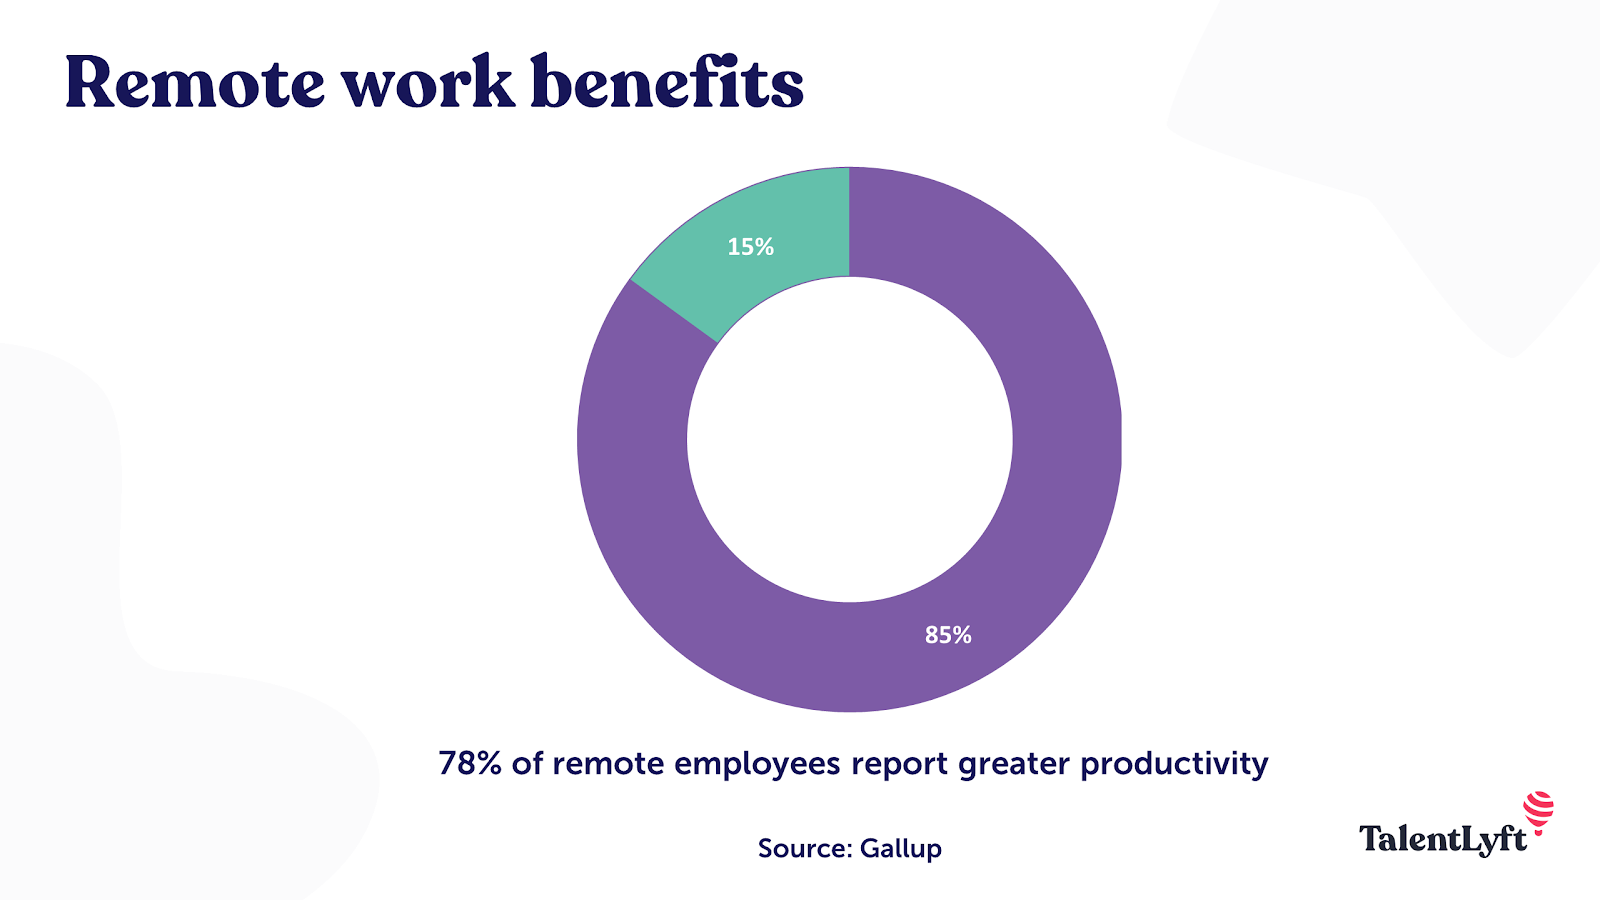 Remote work benefit - higher productivity